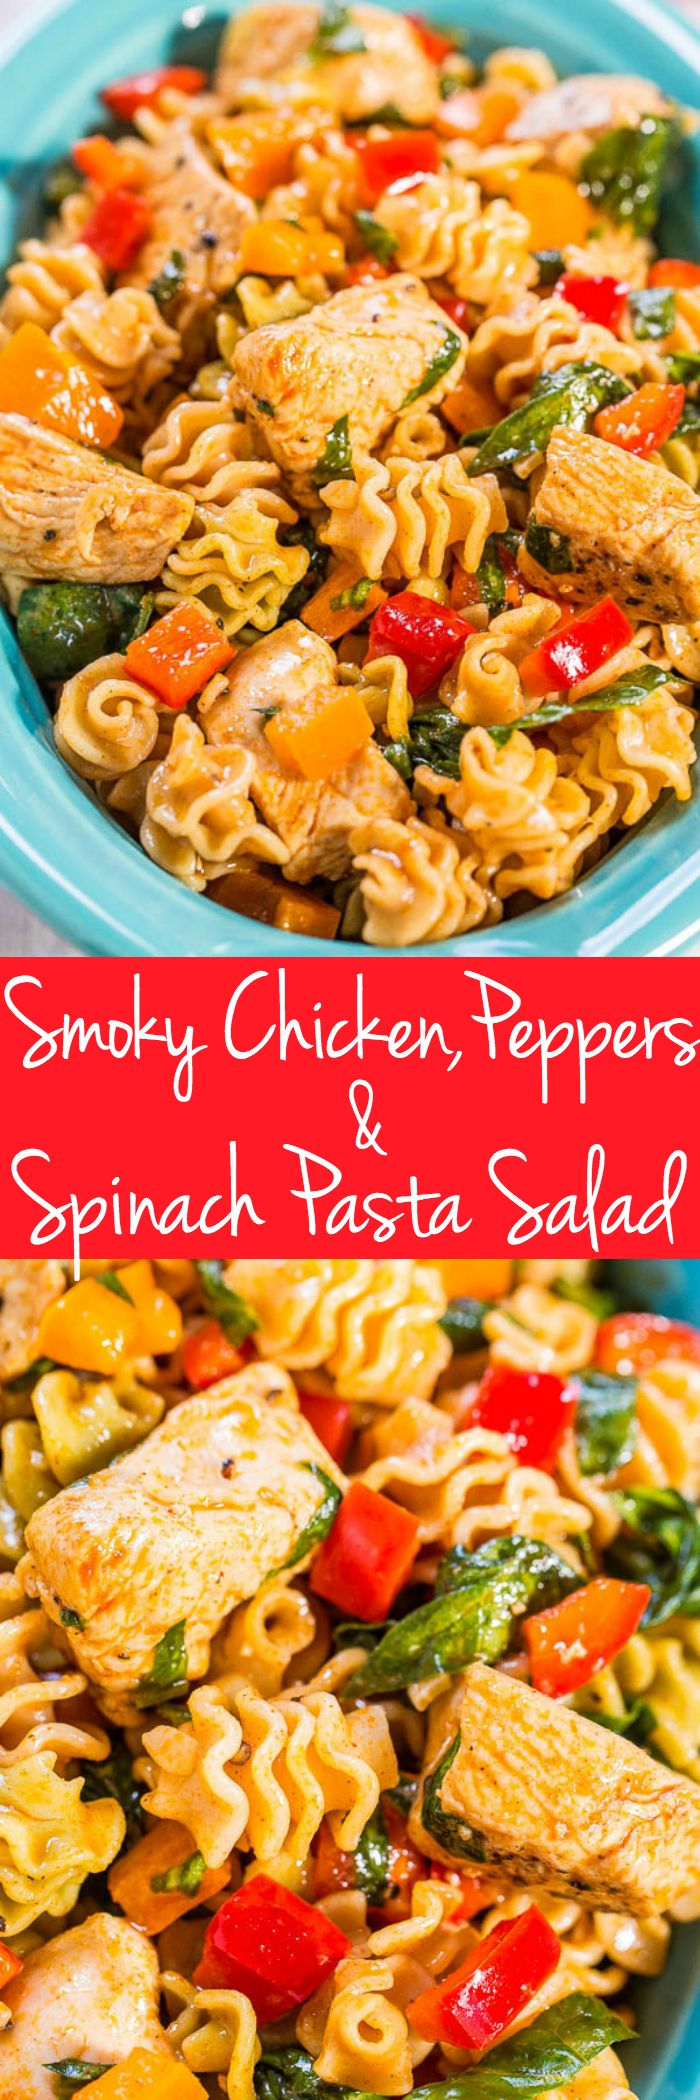 Smoky Chicken, Peppers, and Spinach Pasta Salad (via Bloglovin.com )